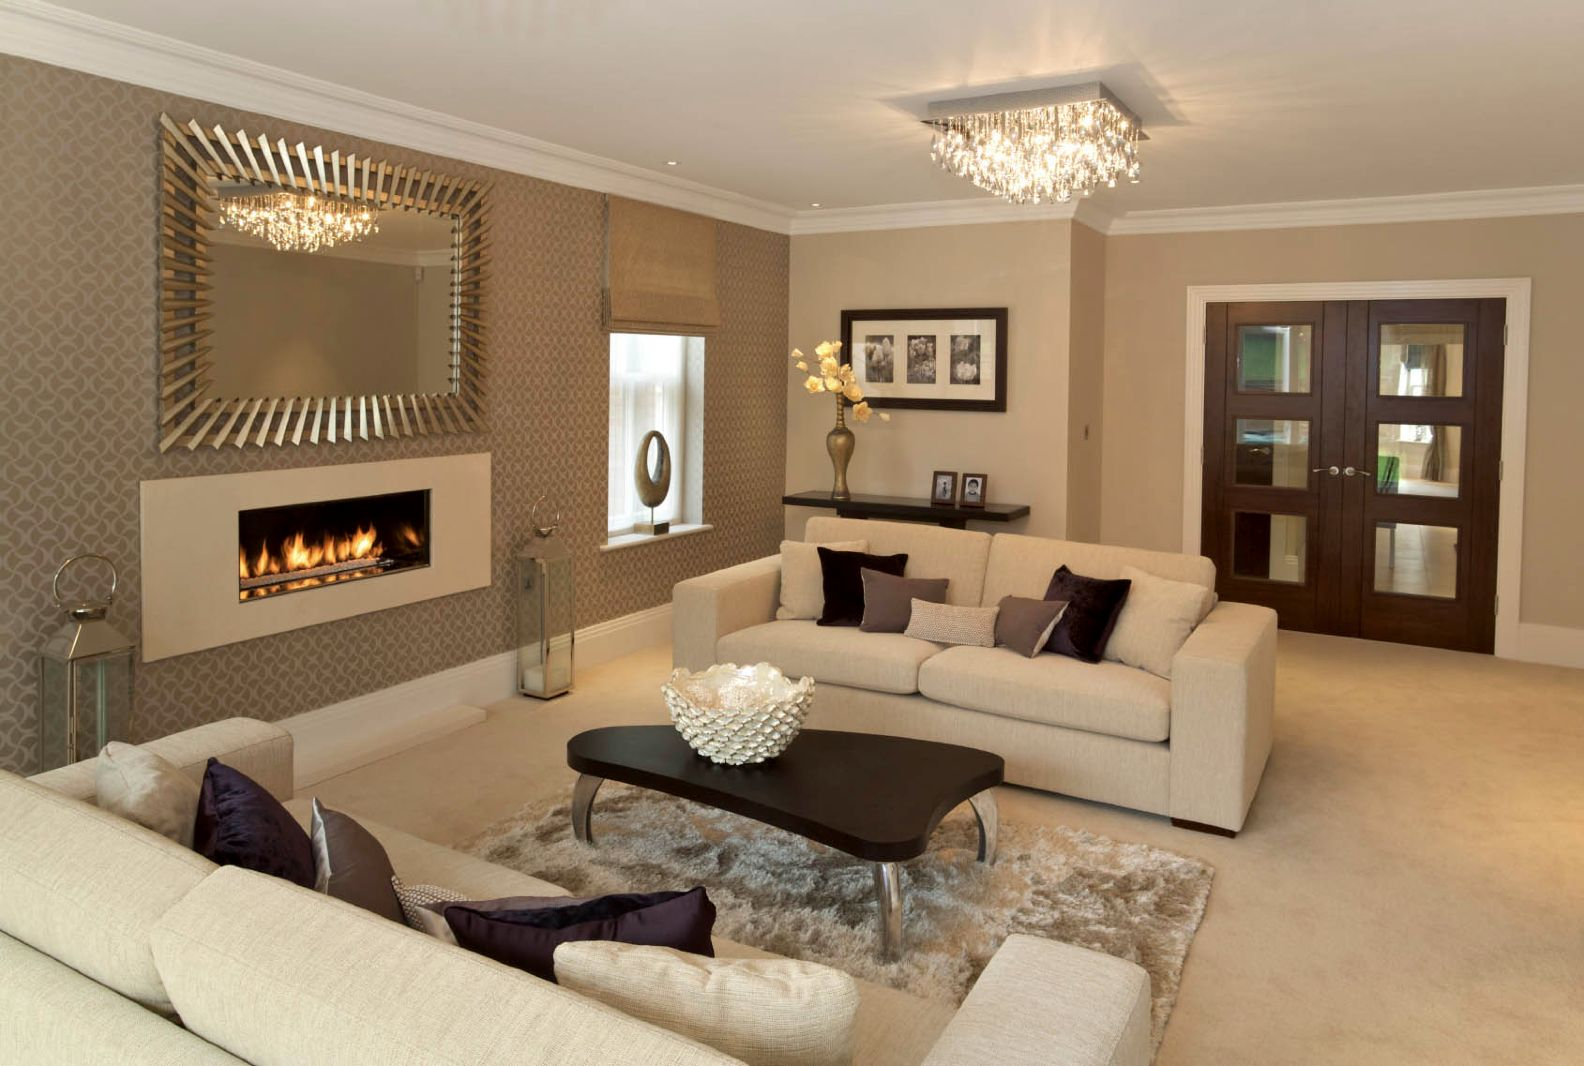 Living Room Interior Design Living Room Ideas living rooms interiors and interior design on pinterest